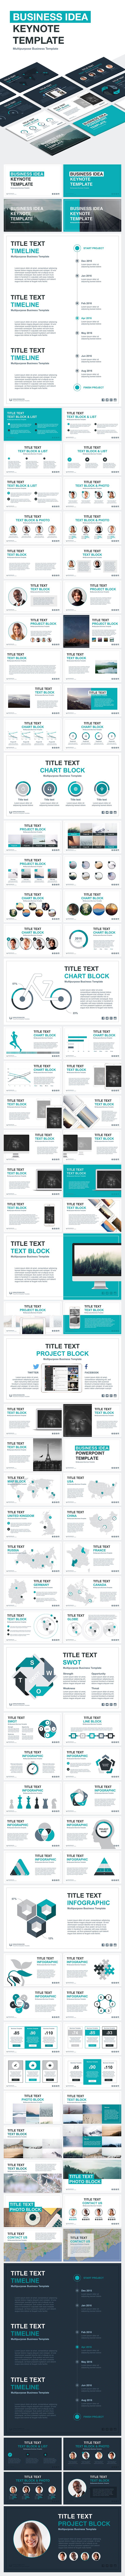 46 best powerpoint template images on pinterest business idea keynote template iwork mac 100 unique slides 3 pre made color hd aspect ratio no full animation toneelgroepblik Image collections